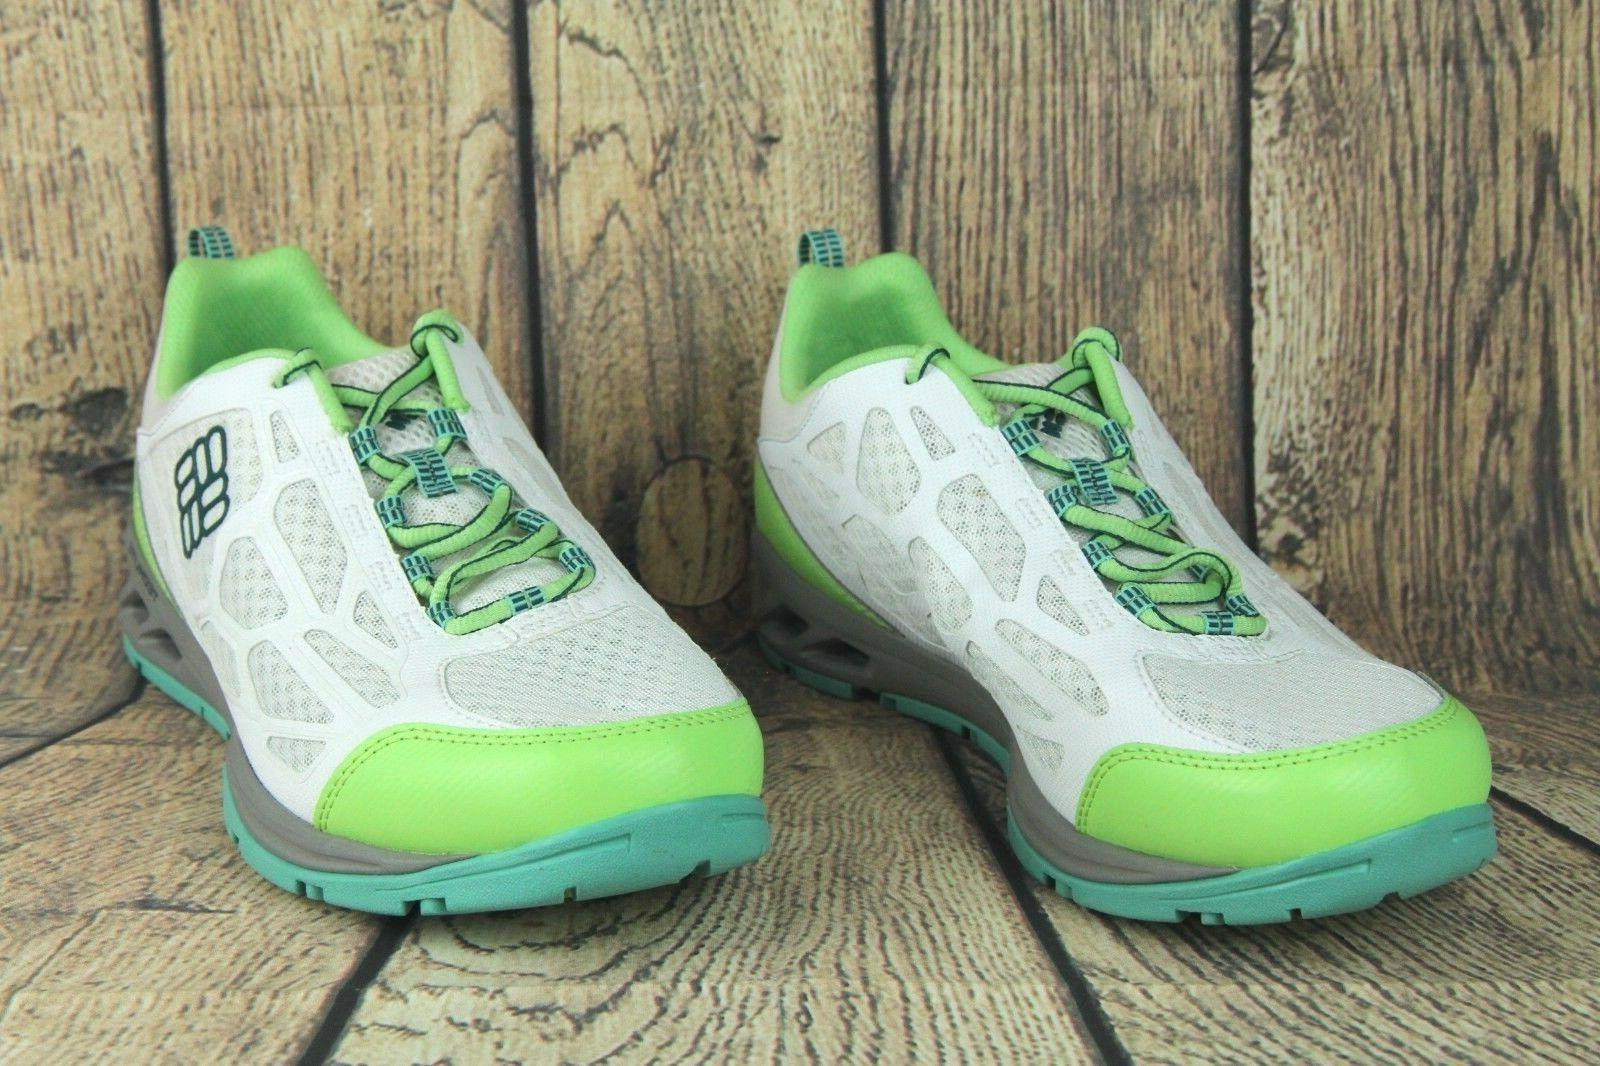 Columbia Water Shoes White Volt BL2676-100 8.5